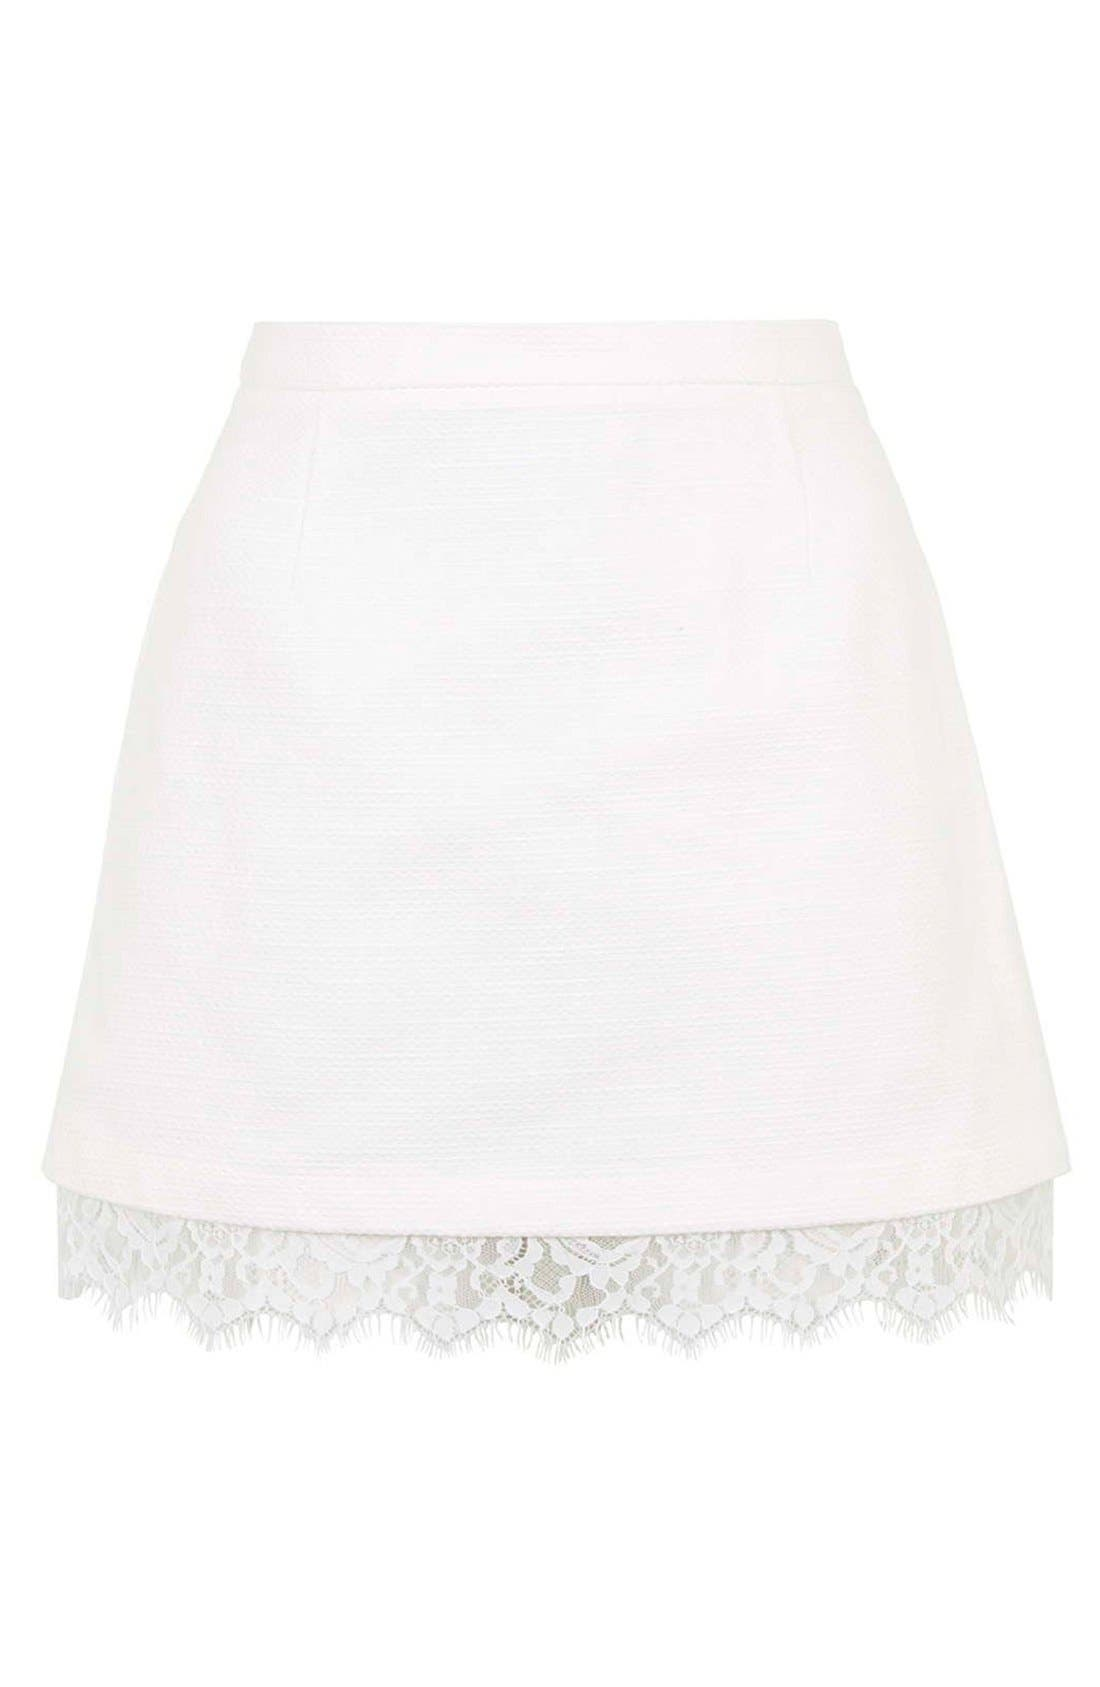 Alternate Image 3  - Topshop Textured Lace Hem Miniskirt